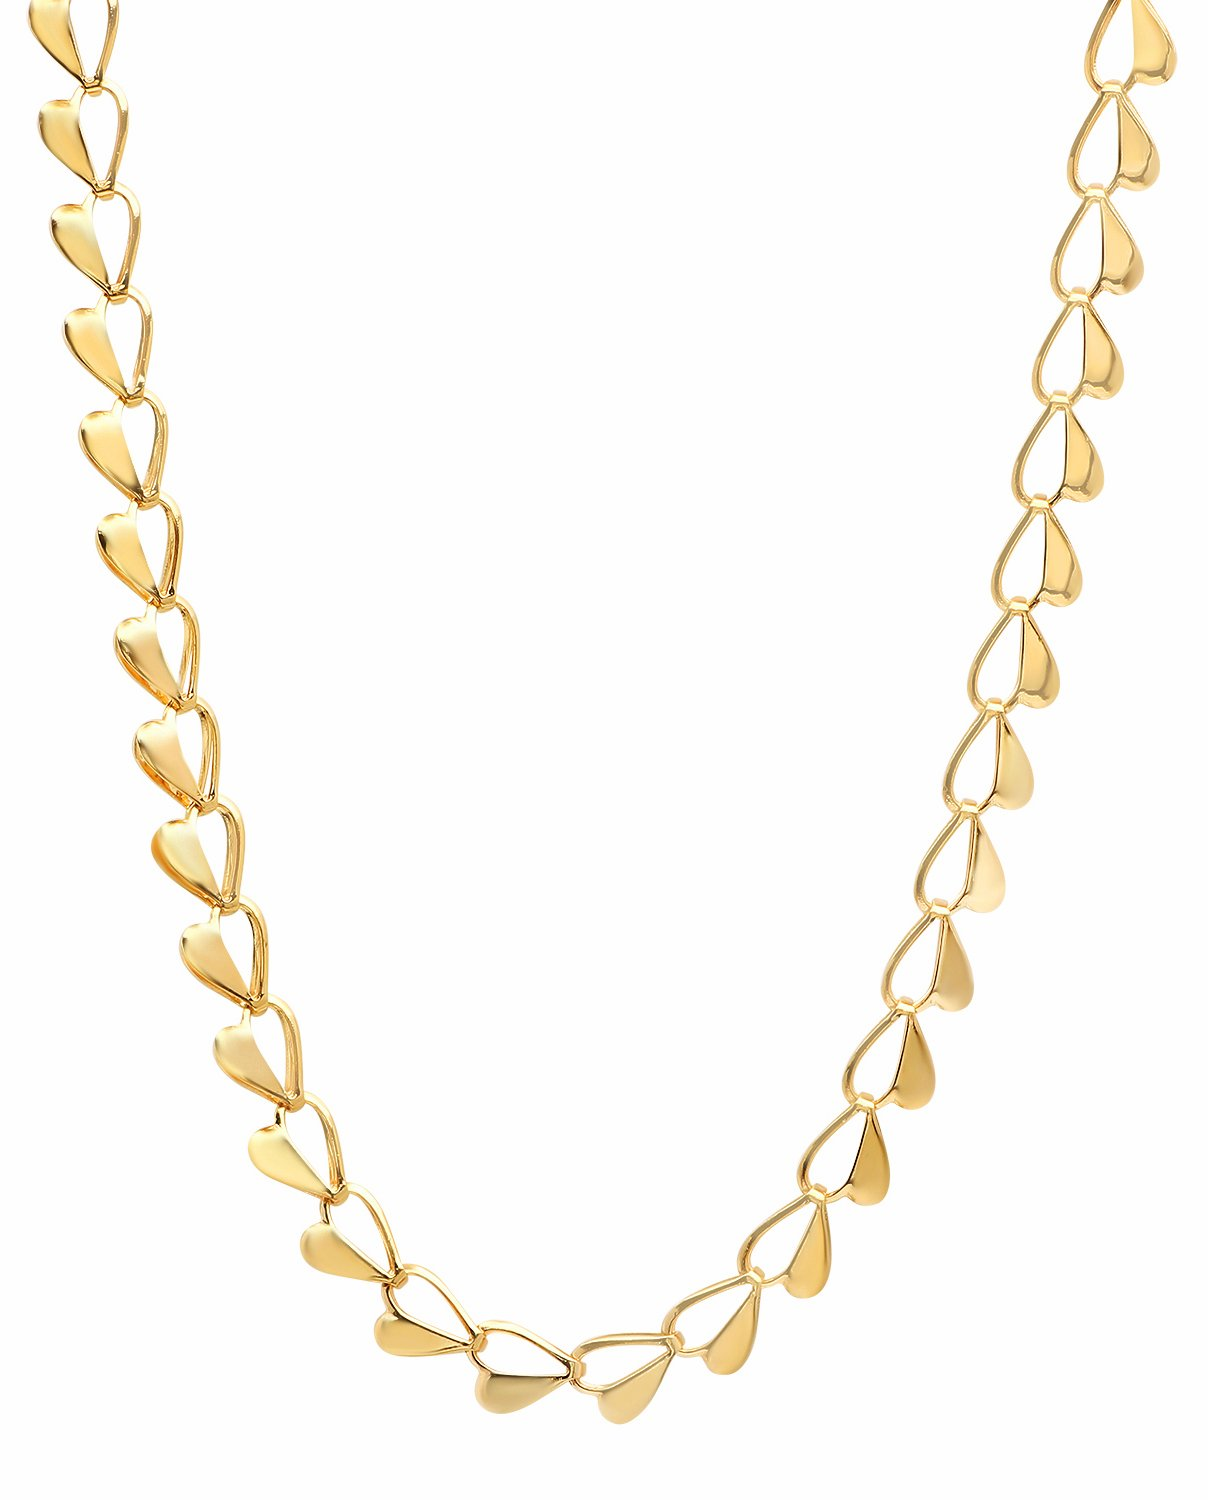 The Bling Factory 6mm 25 Mills 24kt Gold Plated Heart Link Chain Necklace, 16 inches